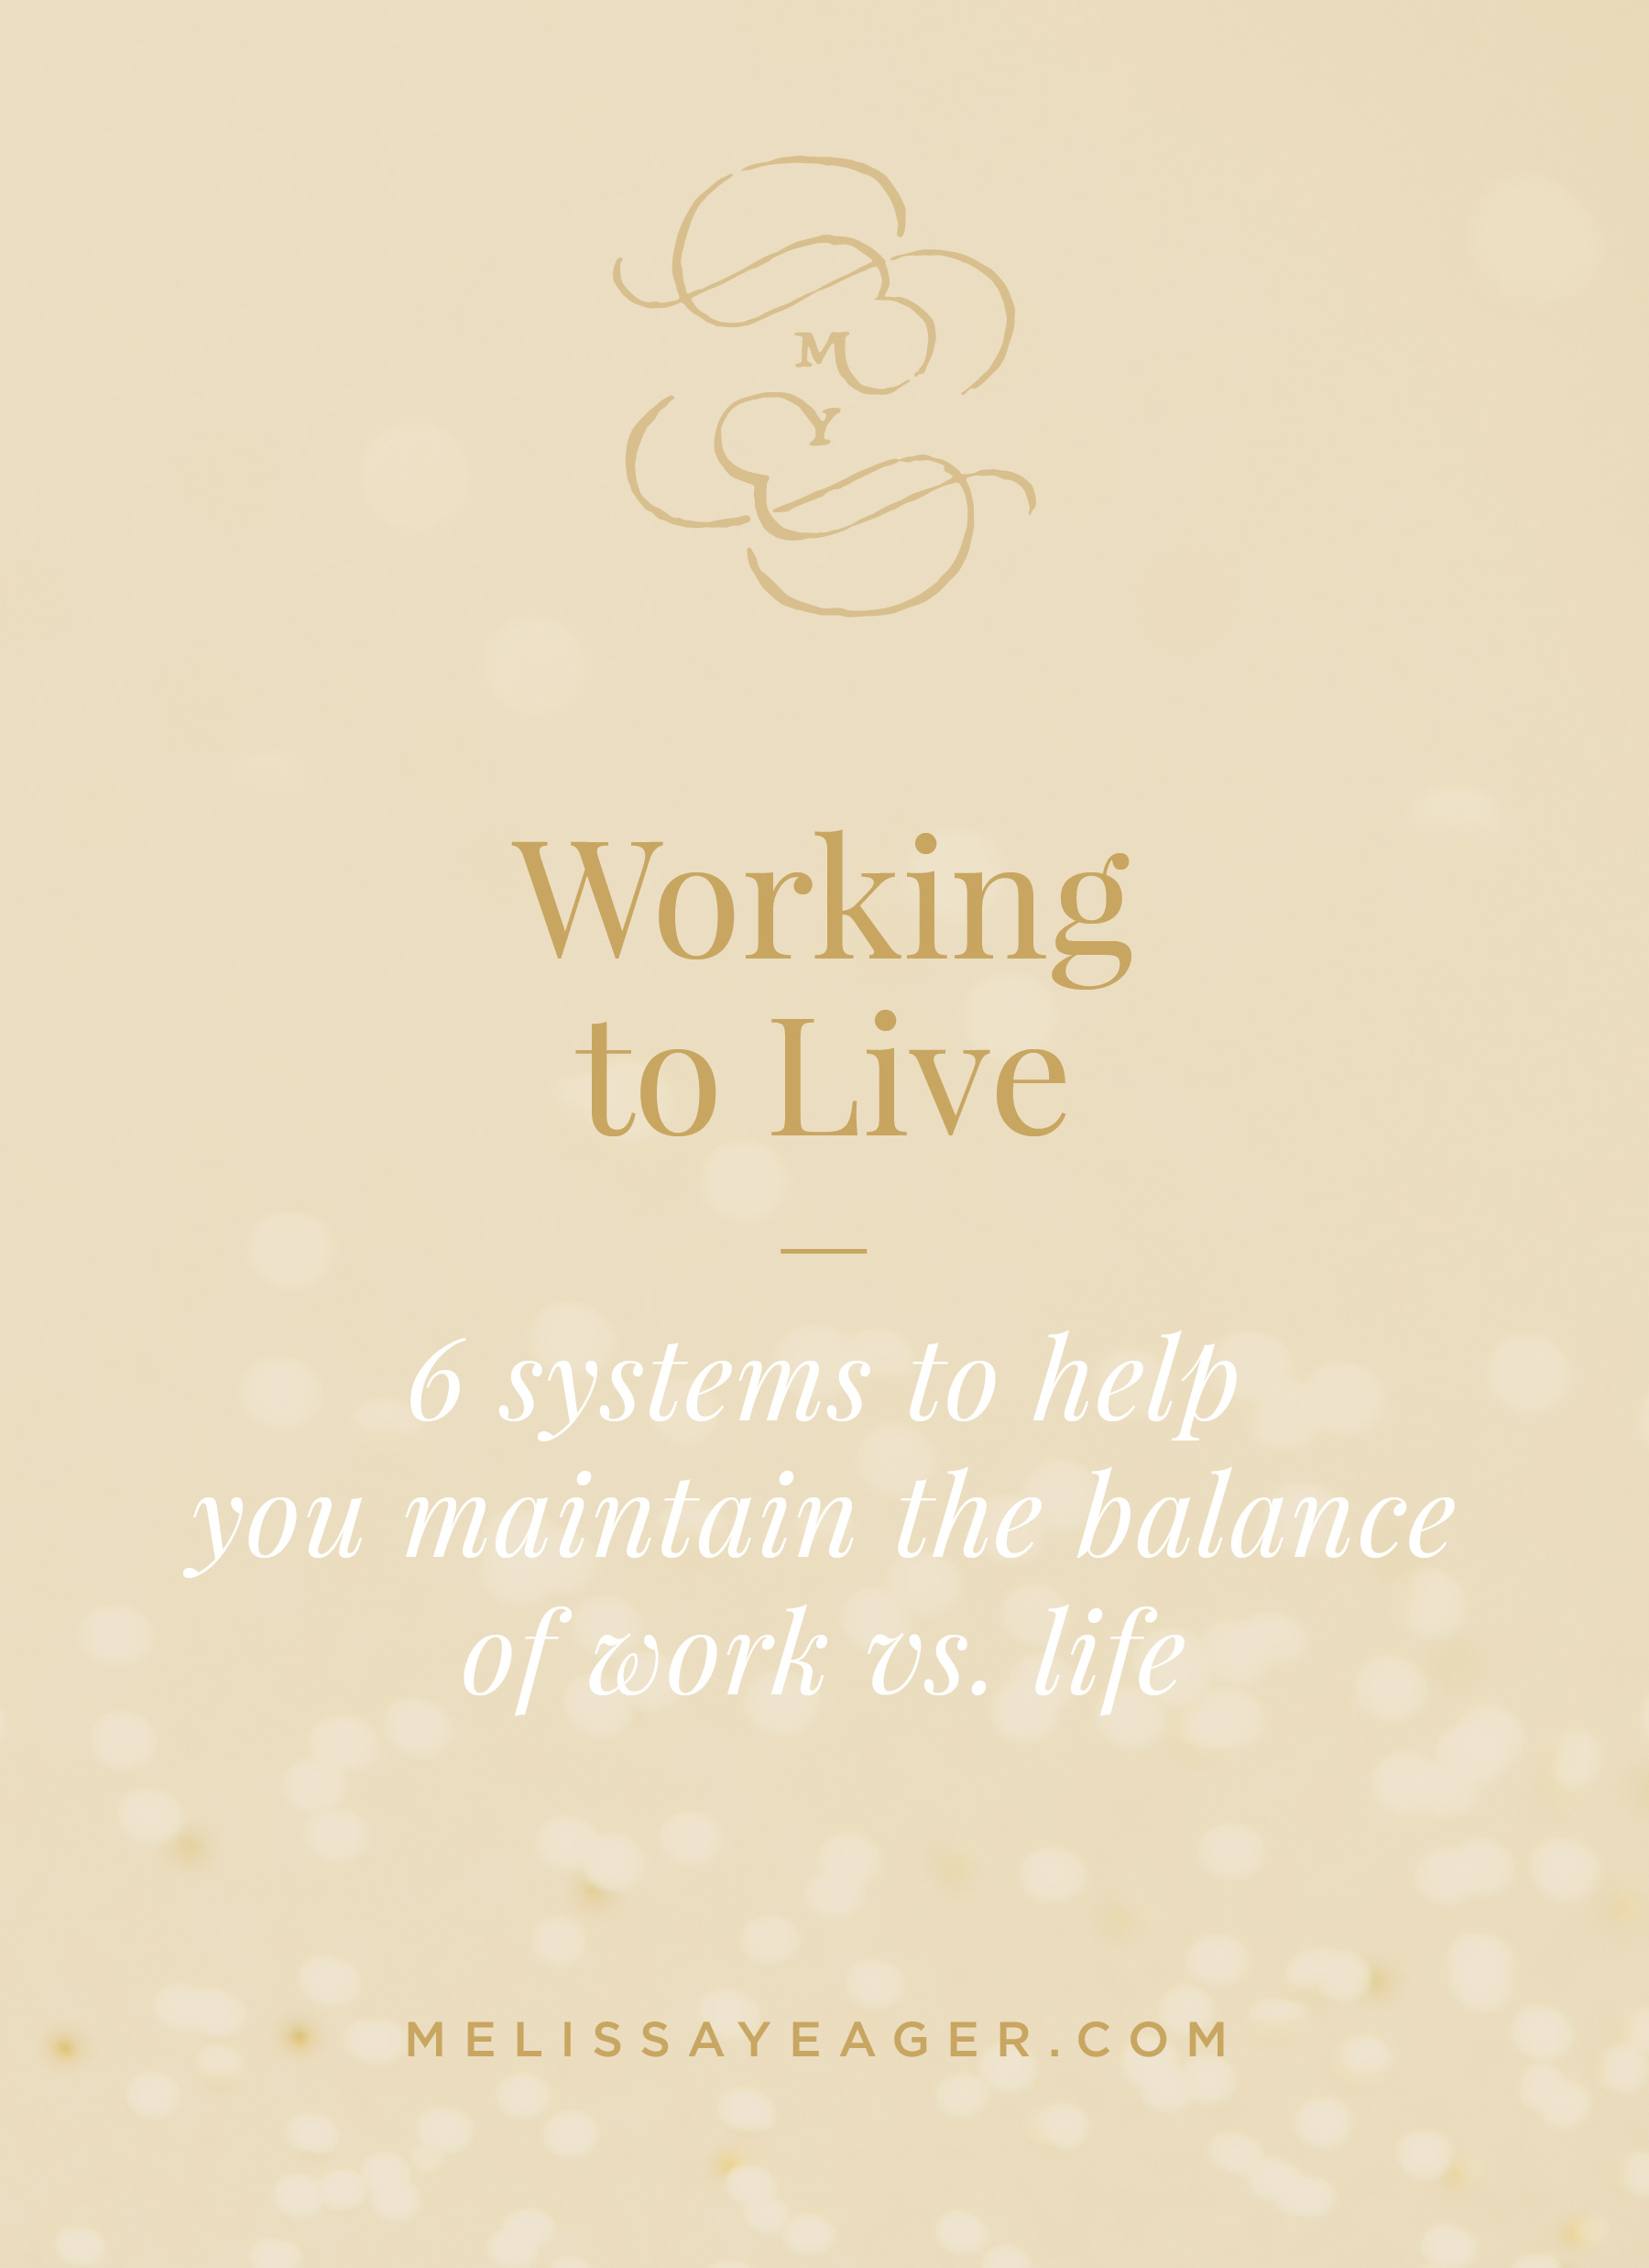 Working to Live - 6 systems to help you maintain the balance of work vs. life